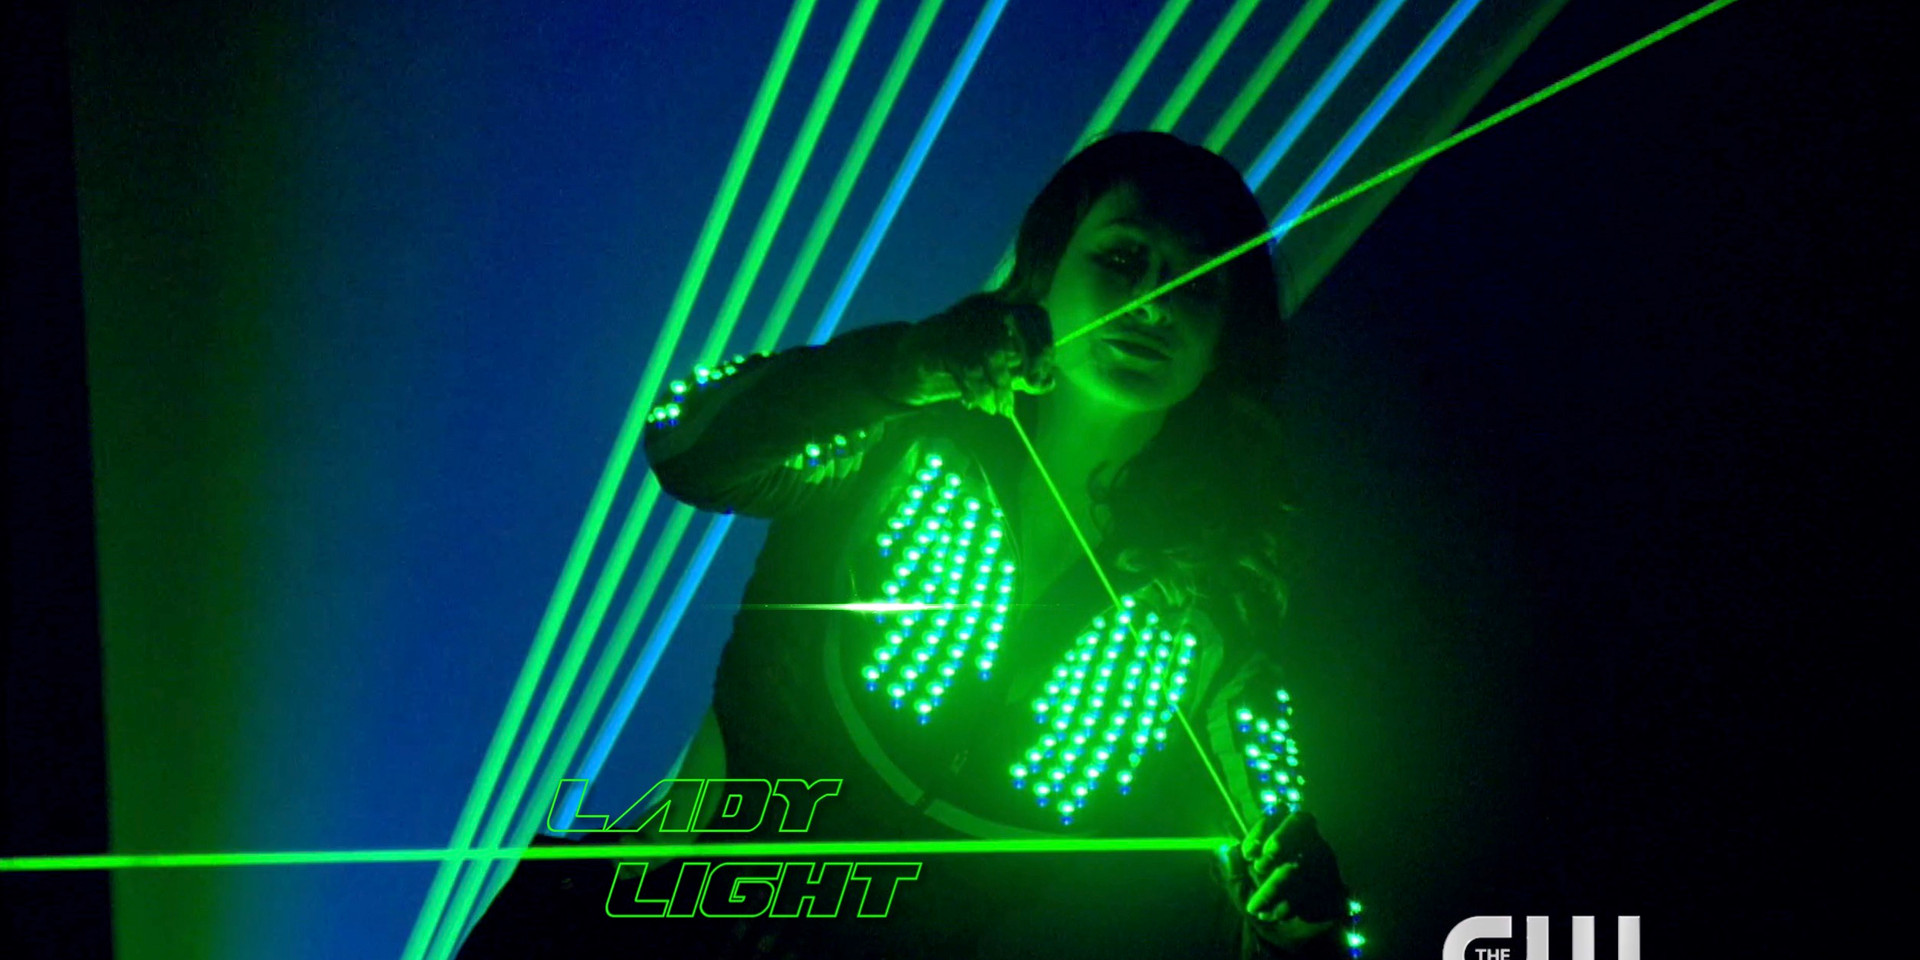 Lady Light on The CW